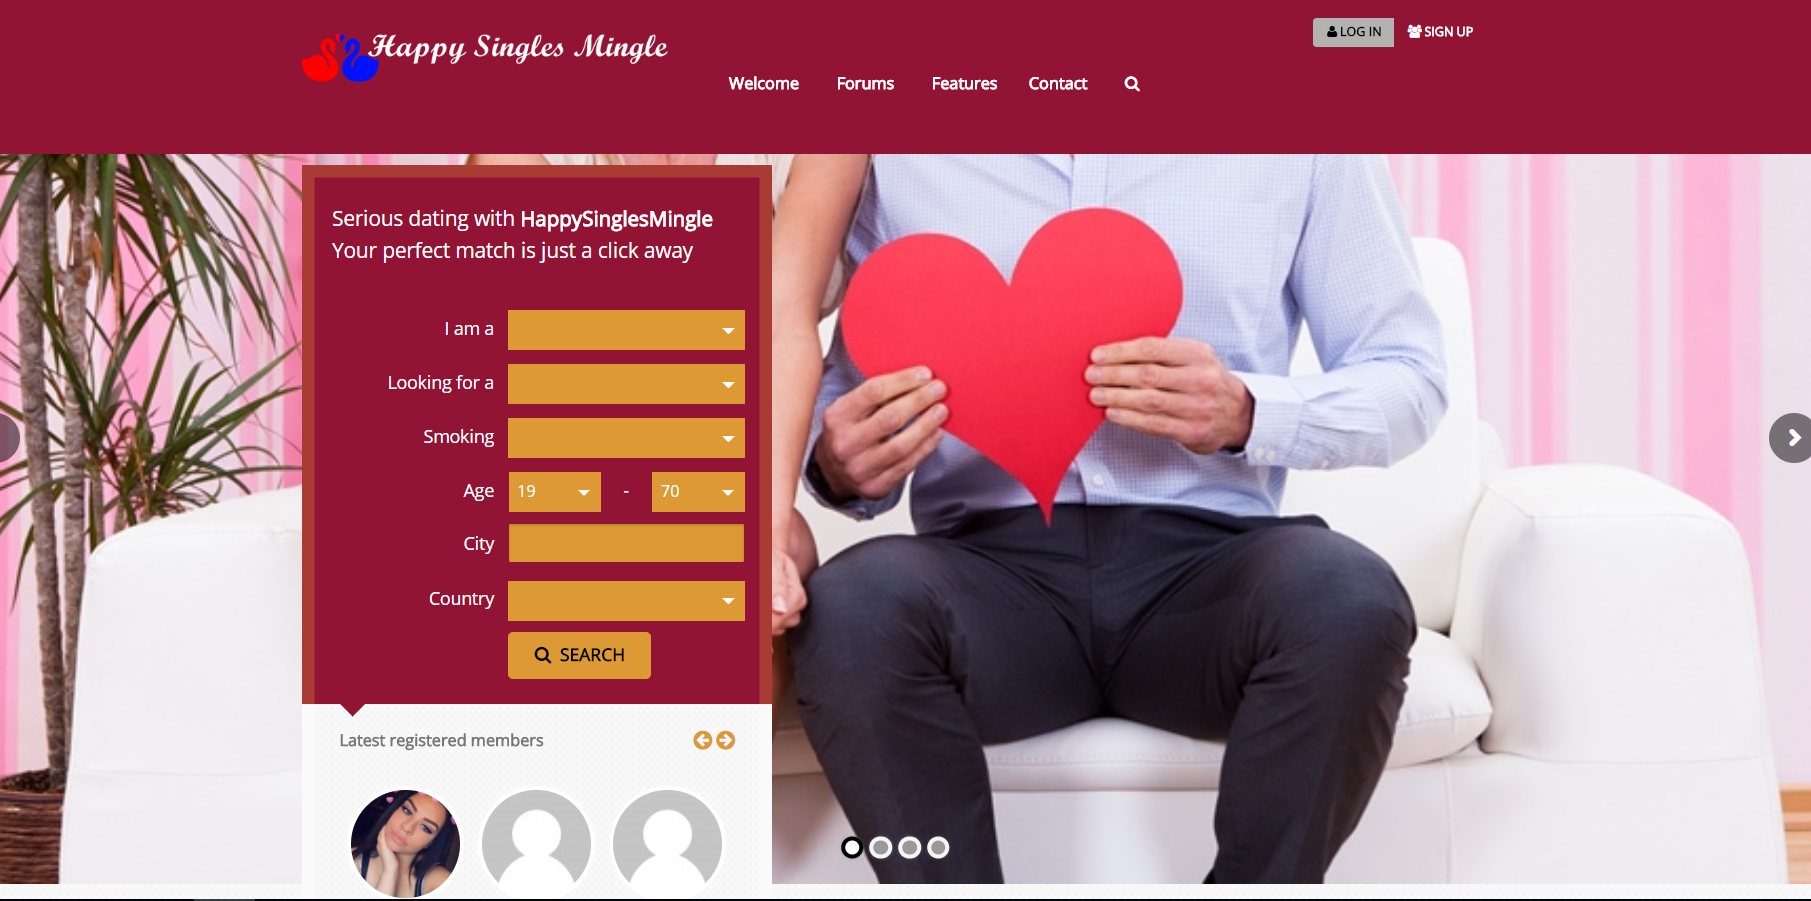 Happysinglesmingle Sign Up Steps